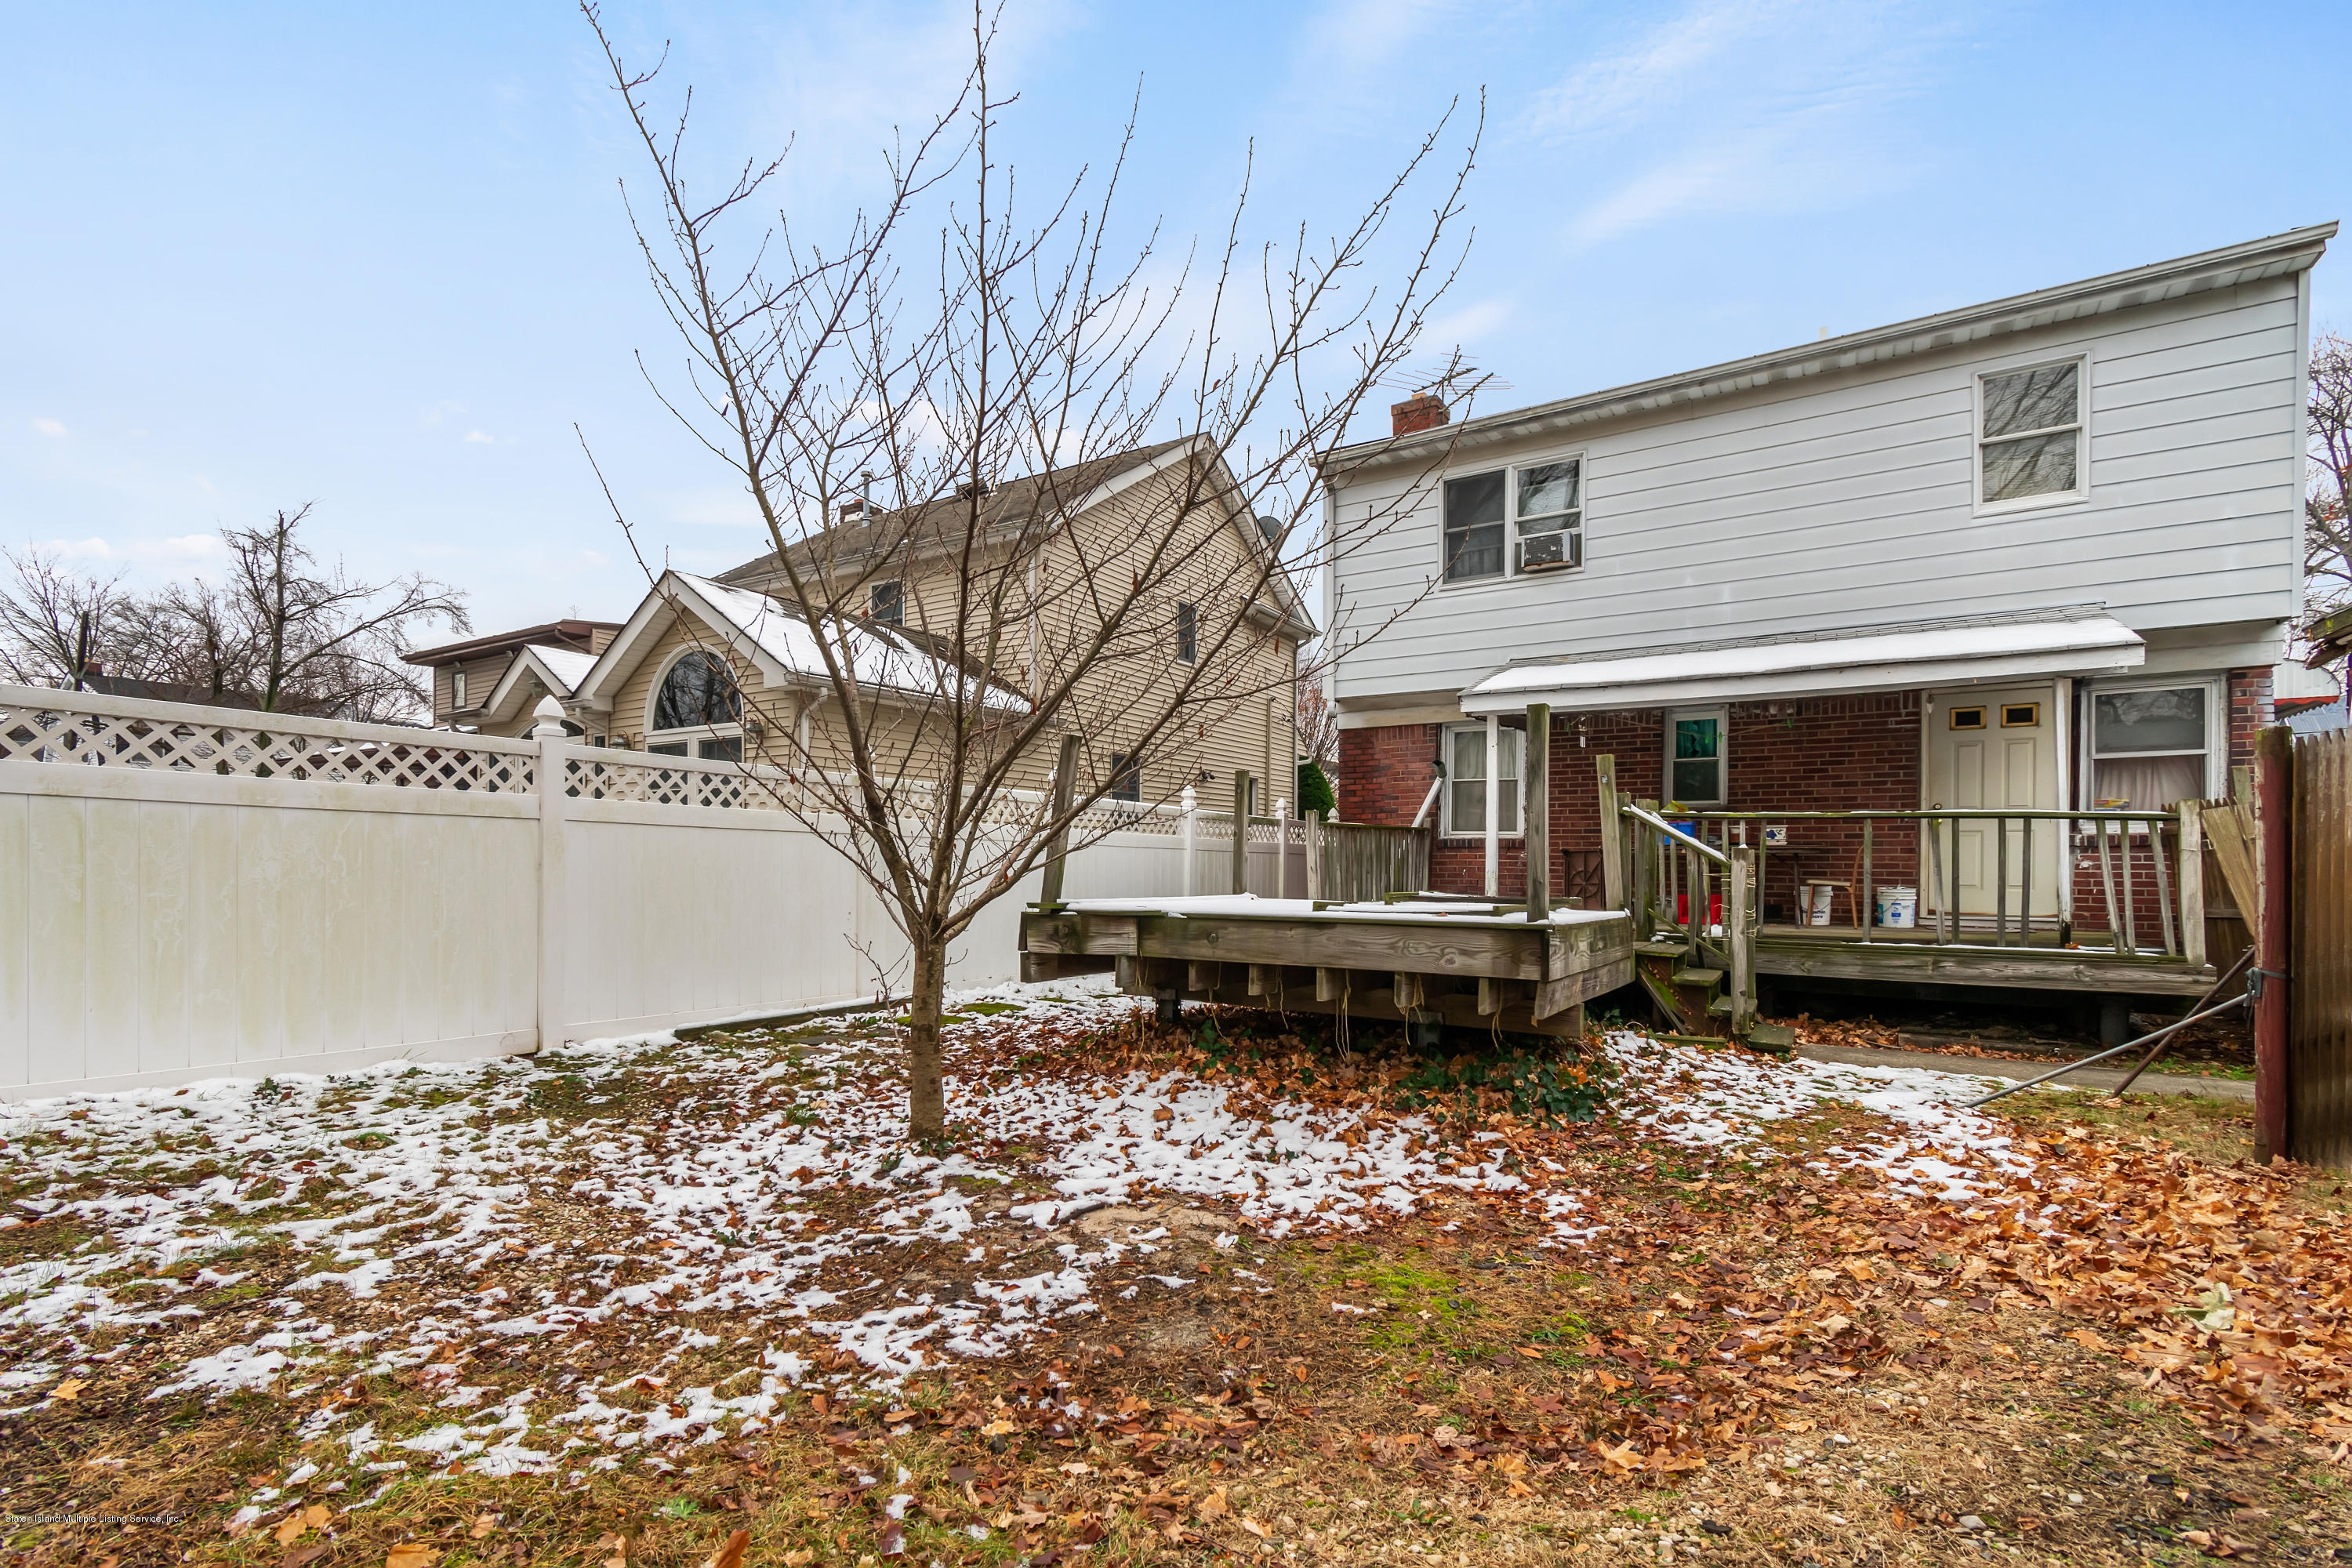 Single Family - Detached 99 Bryson Avenue  Staten Island, NY 10314, MLS-1134340-12